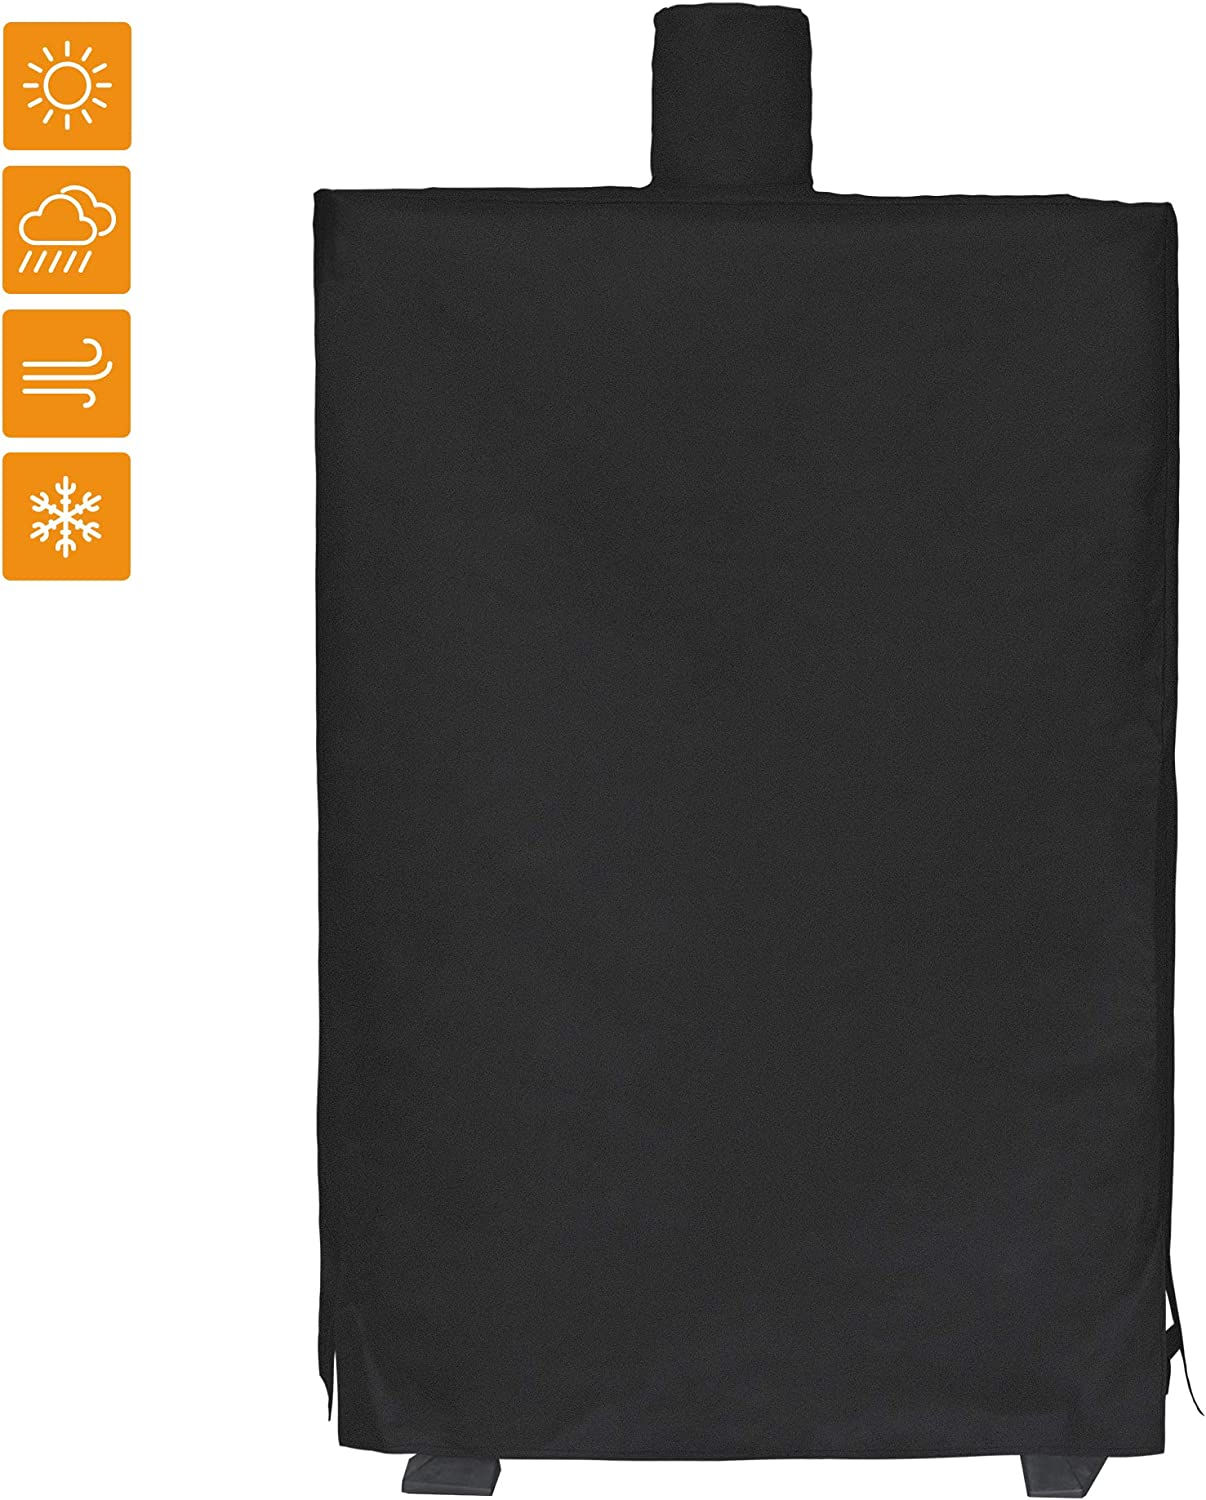 i COVER 73550 Pellet Smoker Cover for Pit Boss Grills 77550 5.5 and 5 Series PBV5P1, pro Series 4 Vertical Pellet Smokers PBV4PS1 600D Waterproof Heavy-Duty Canvas Vertical Smoker Cover